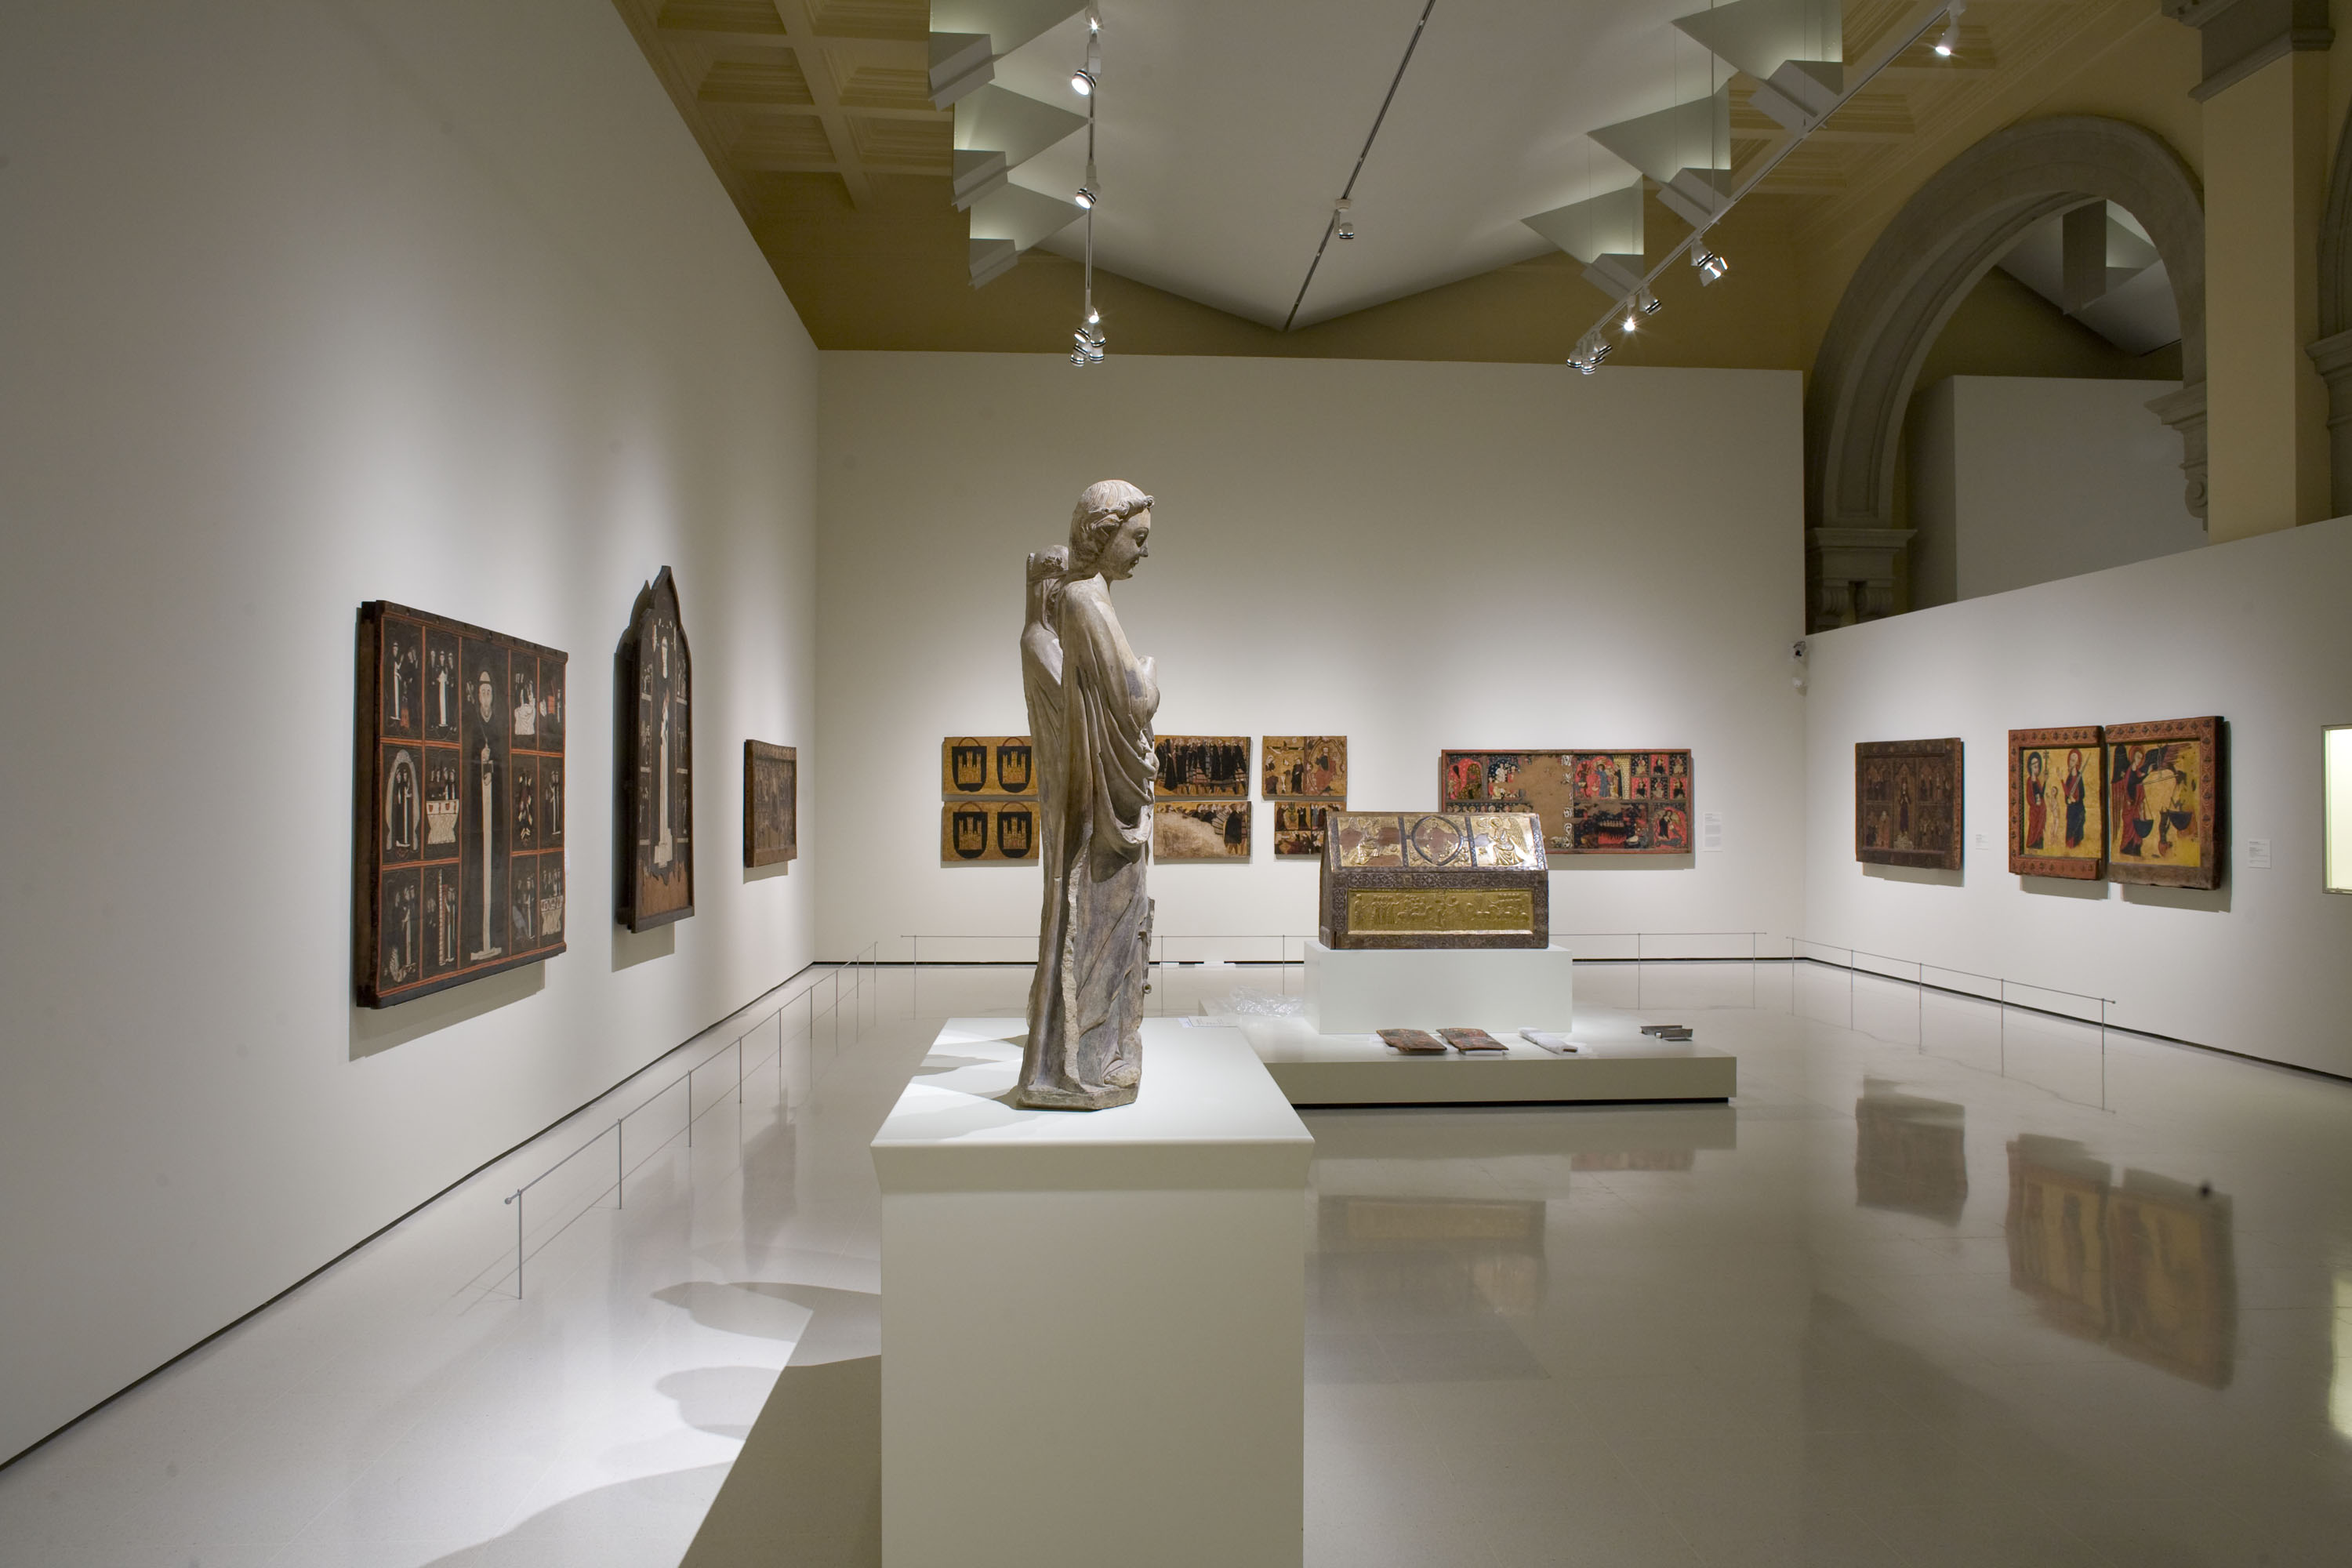 Gothic Art rooms of the Museu Nacional